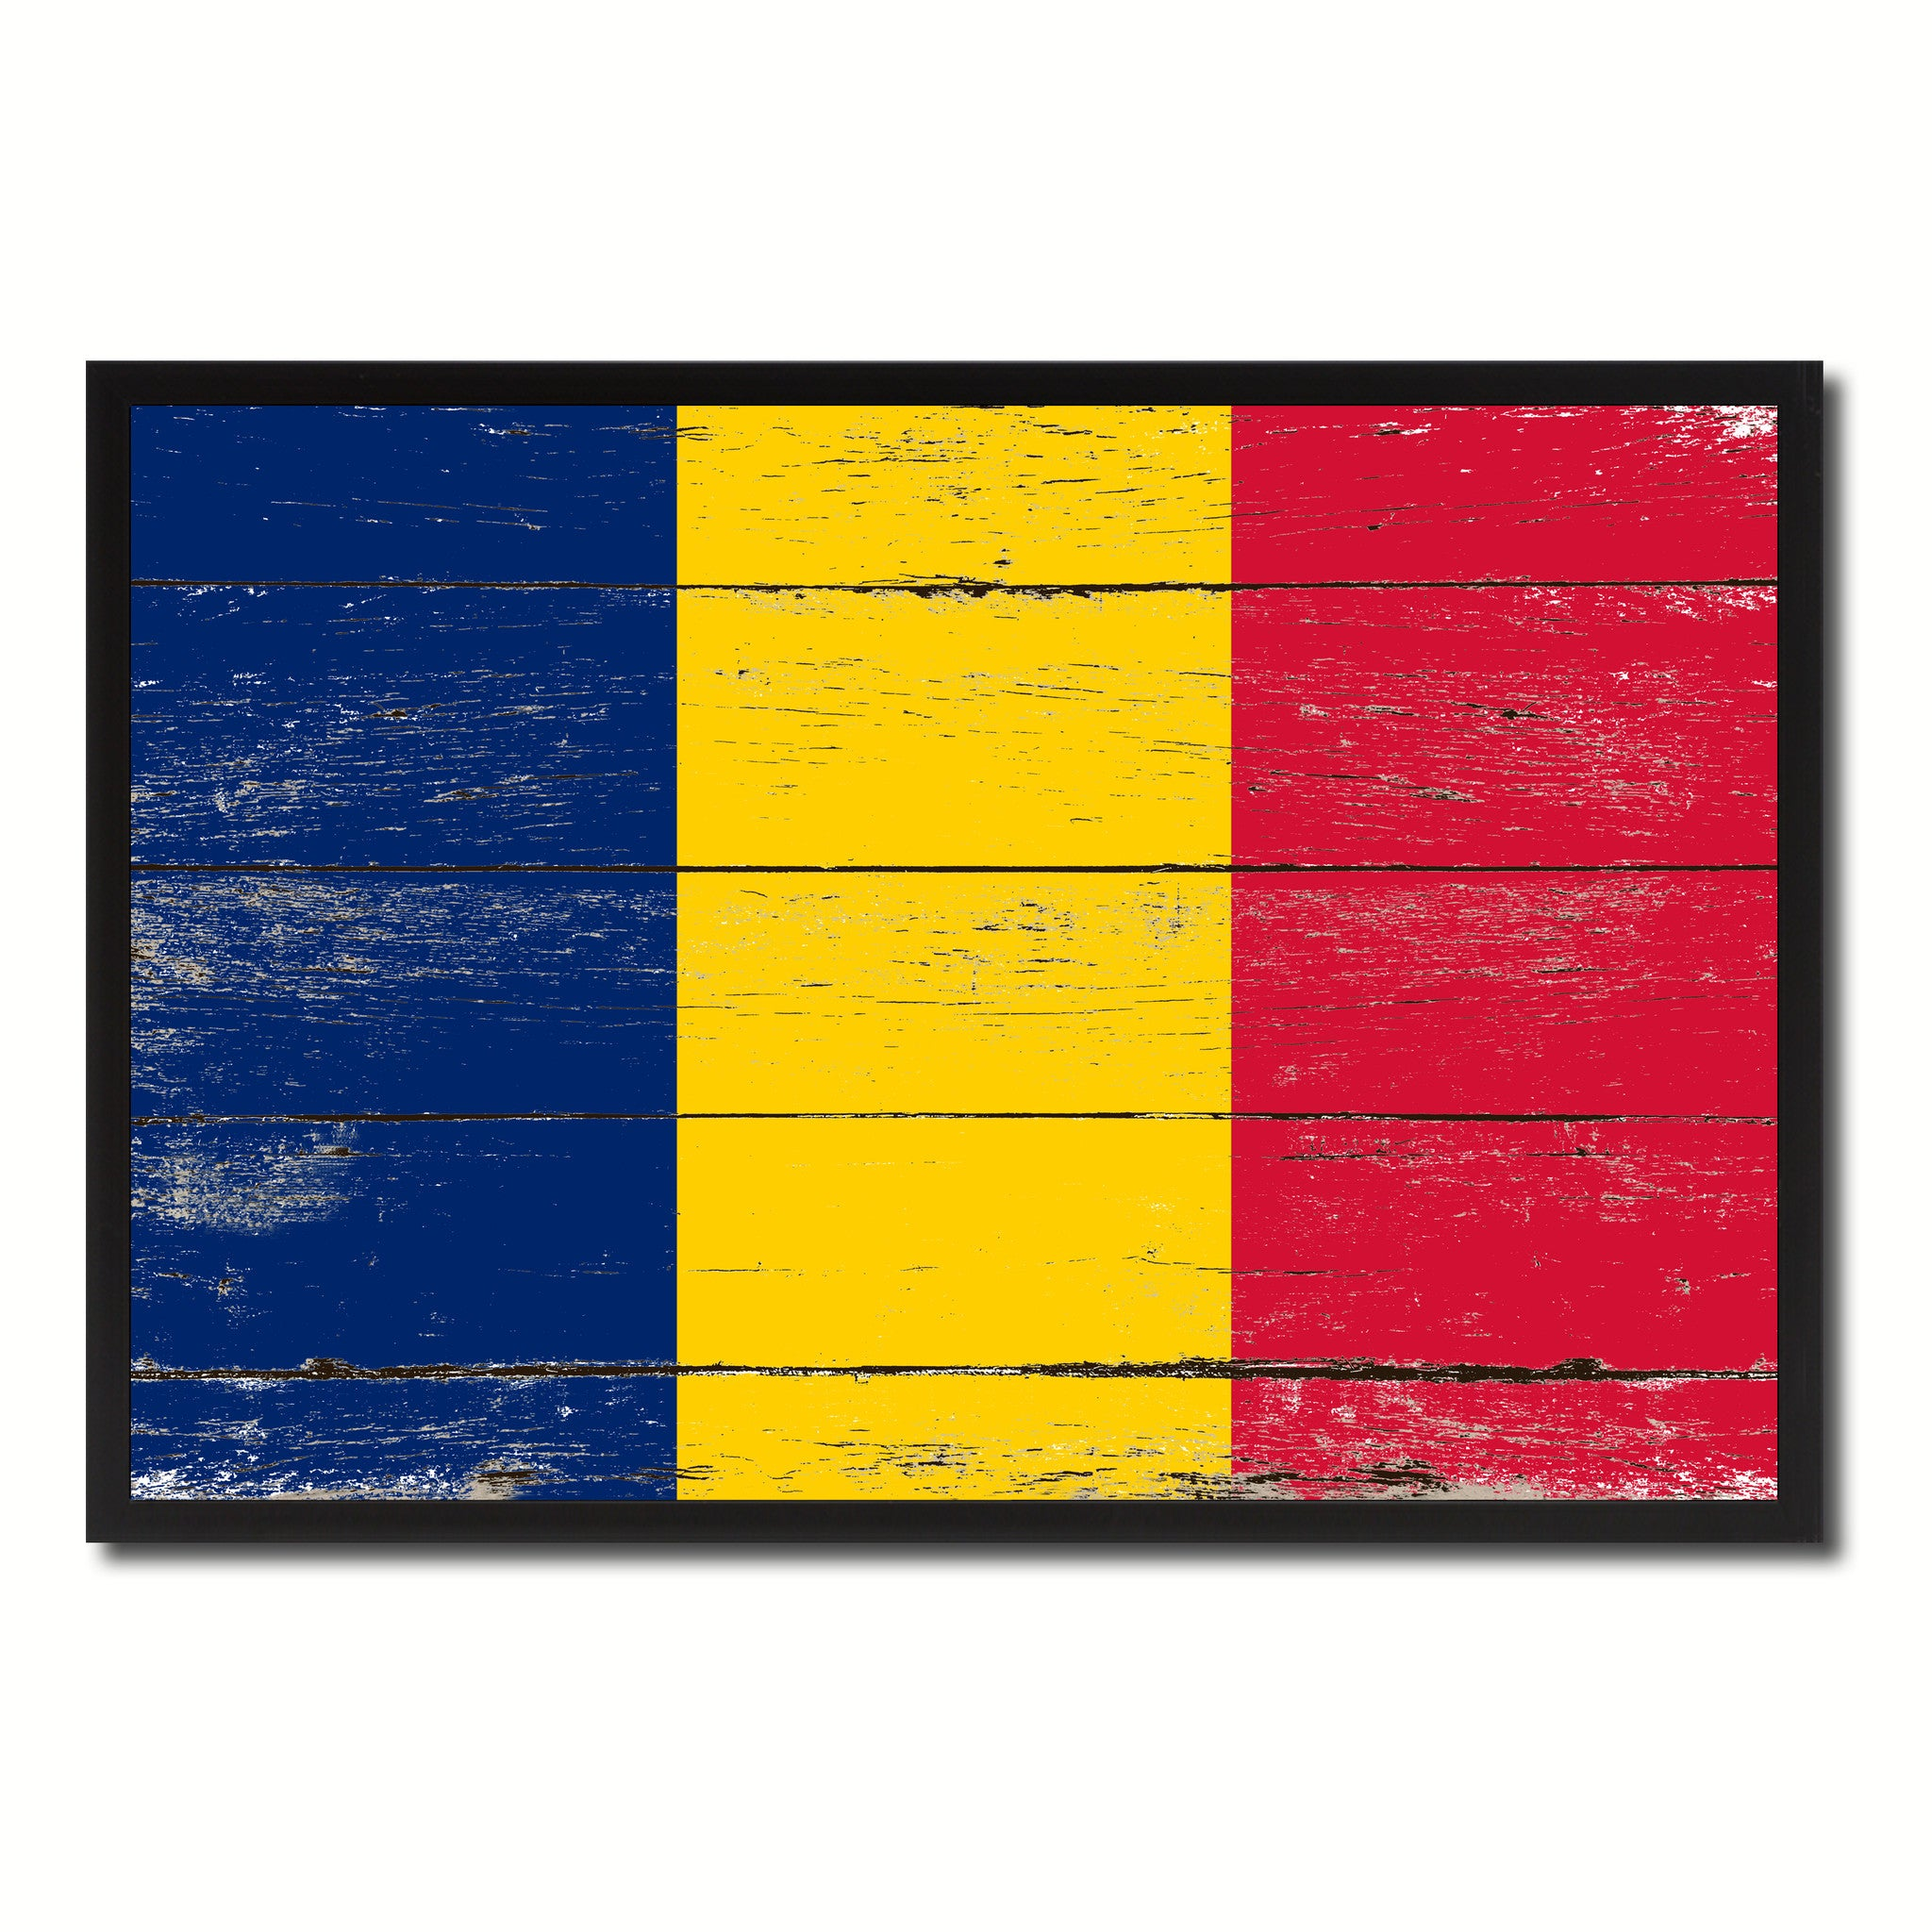 Chad Country National Flag Vintage Canvas Print with Picture Frame Home Decor Wall Art Collection Gift Ideas